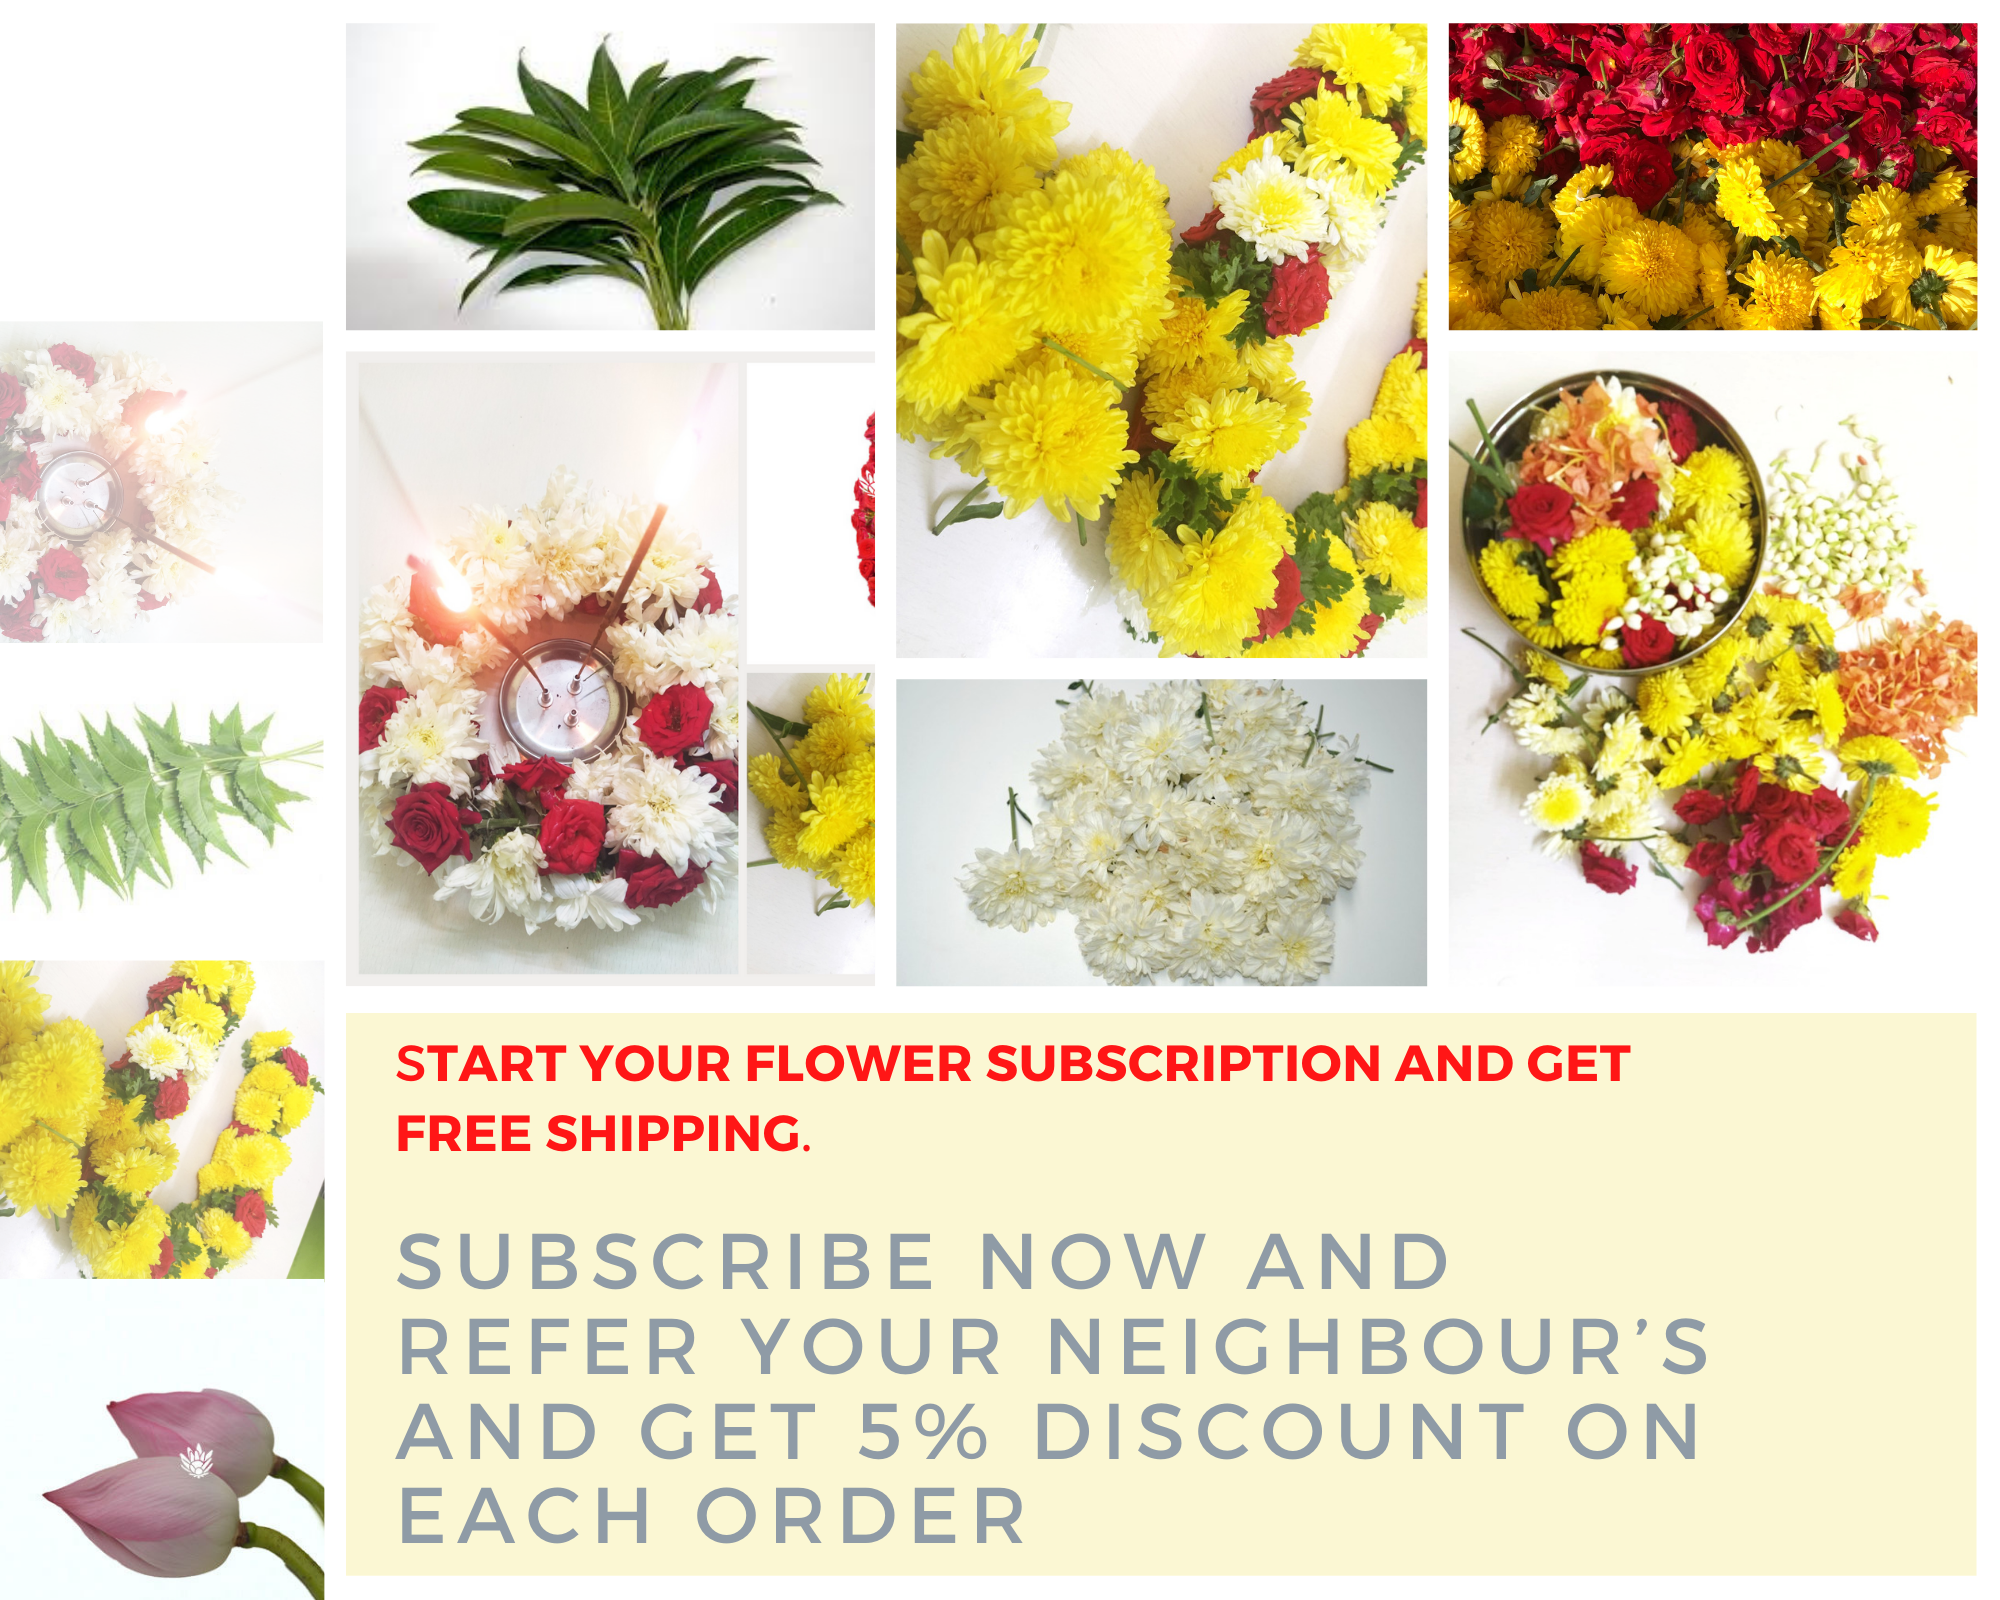 Start Your Flower Subscription And Get Free Shipping Flower Subscription Flowers Delivered Flowers